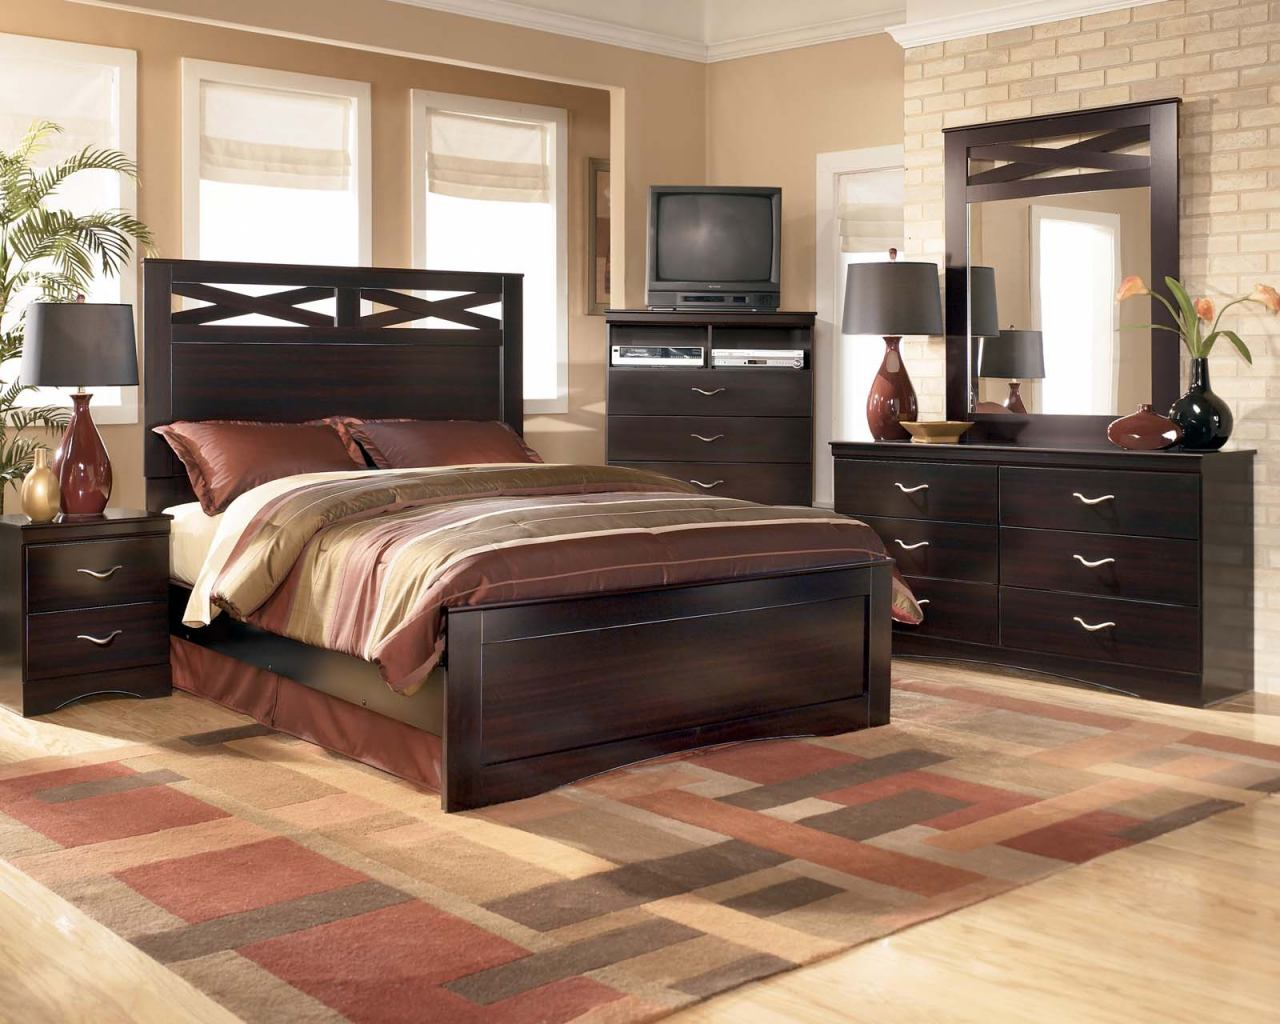 horsford s furniture and apppliances and ashley furniture stores